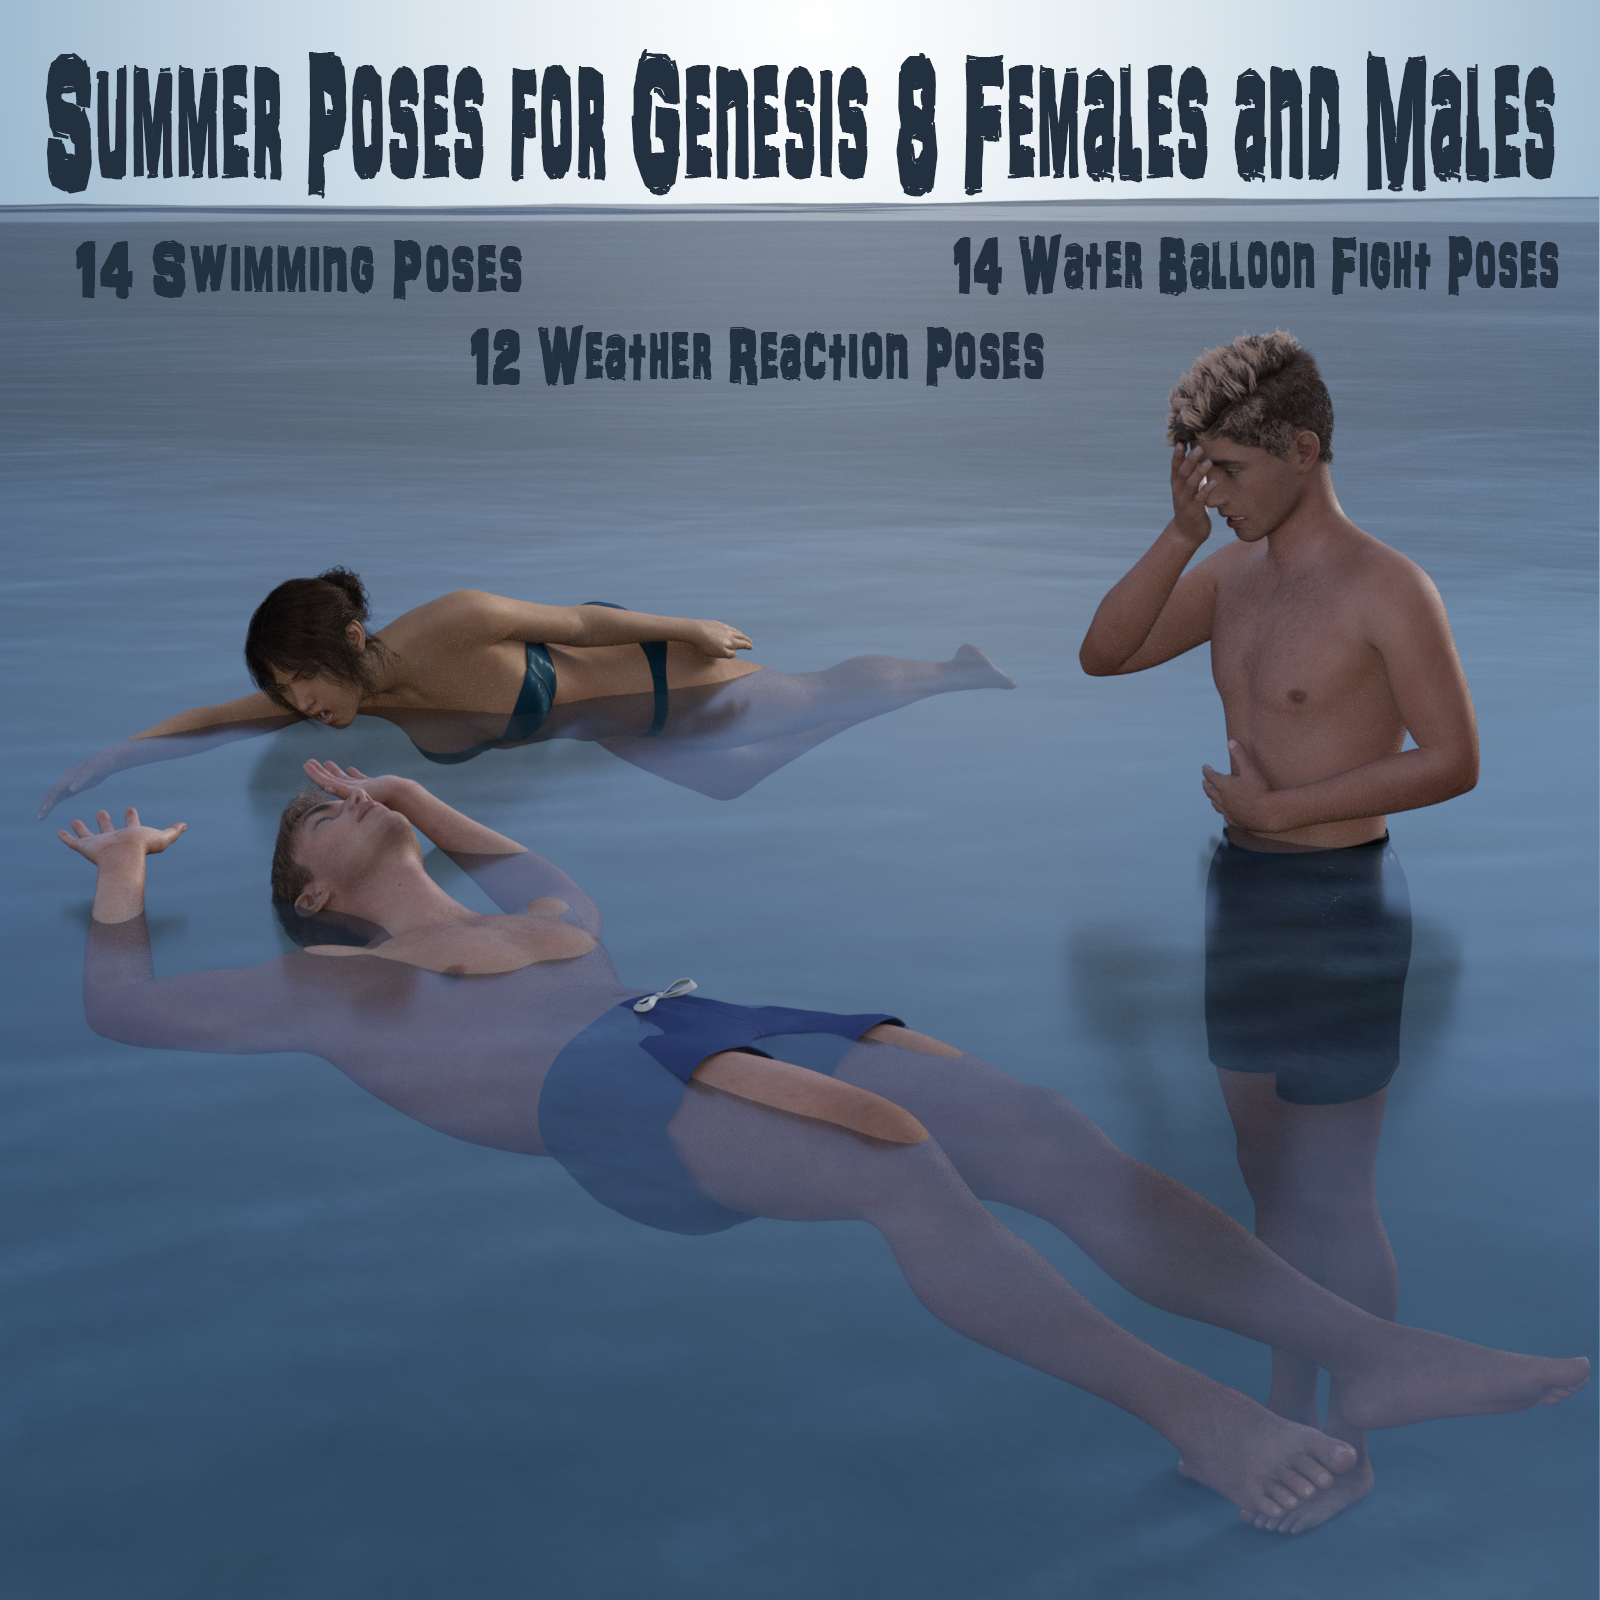 Summer Poses for Genesis 8 Males and Females